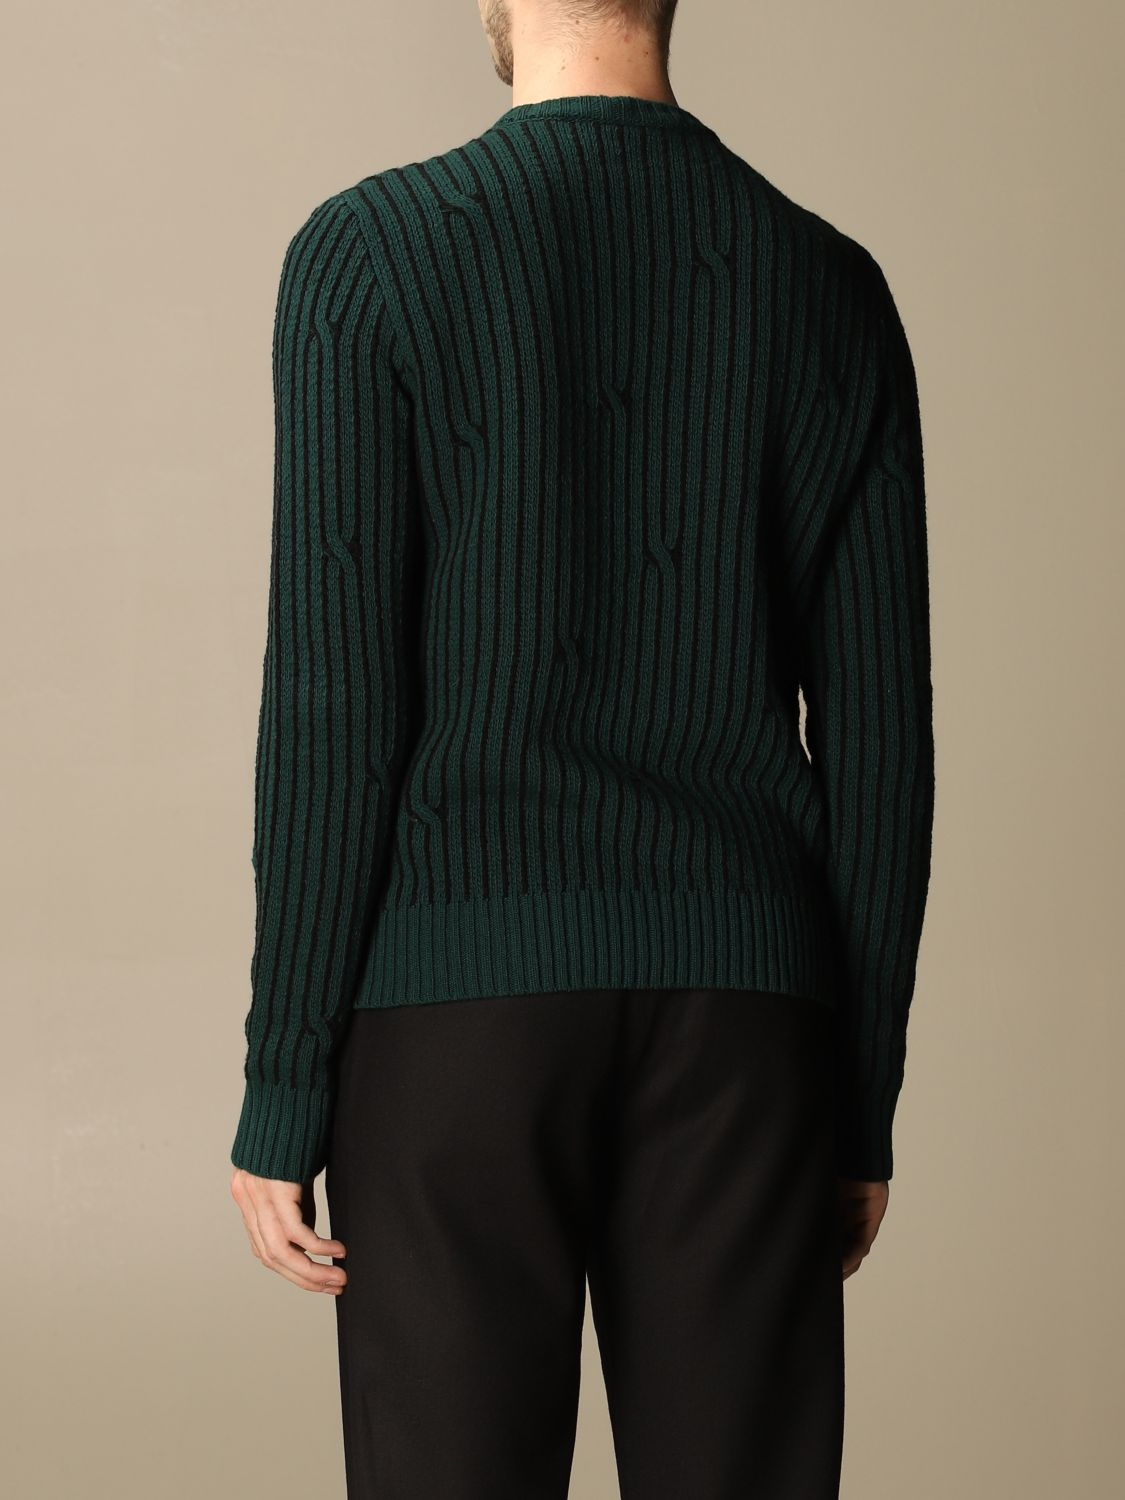 Sweater Off White: Off White men's sweater green 2